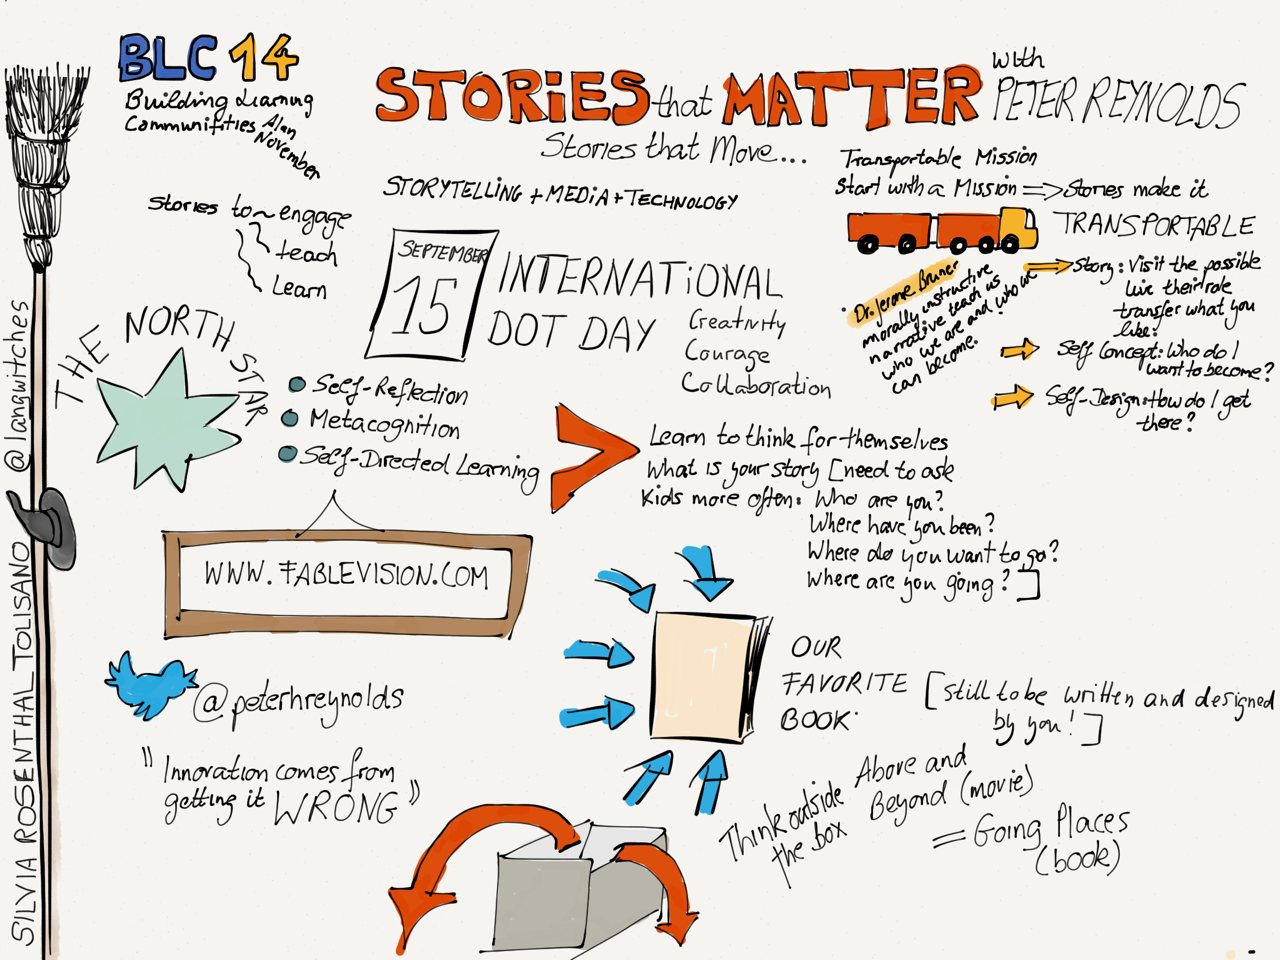 PeterReynolds-stories-that-matter-sketchnotes-tolisano